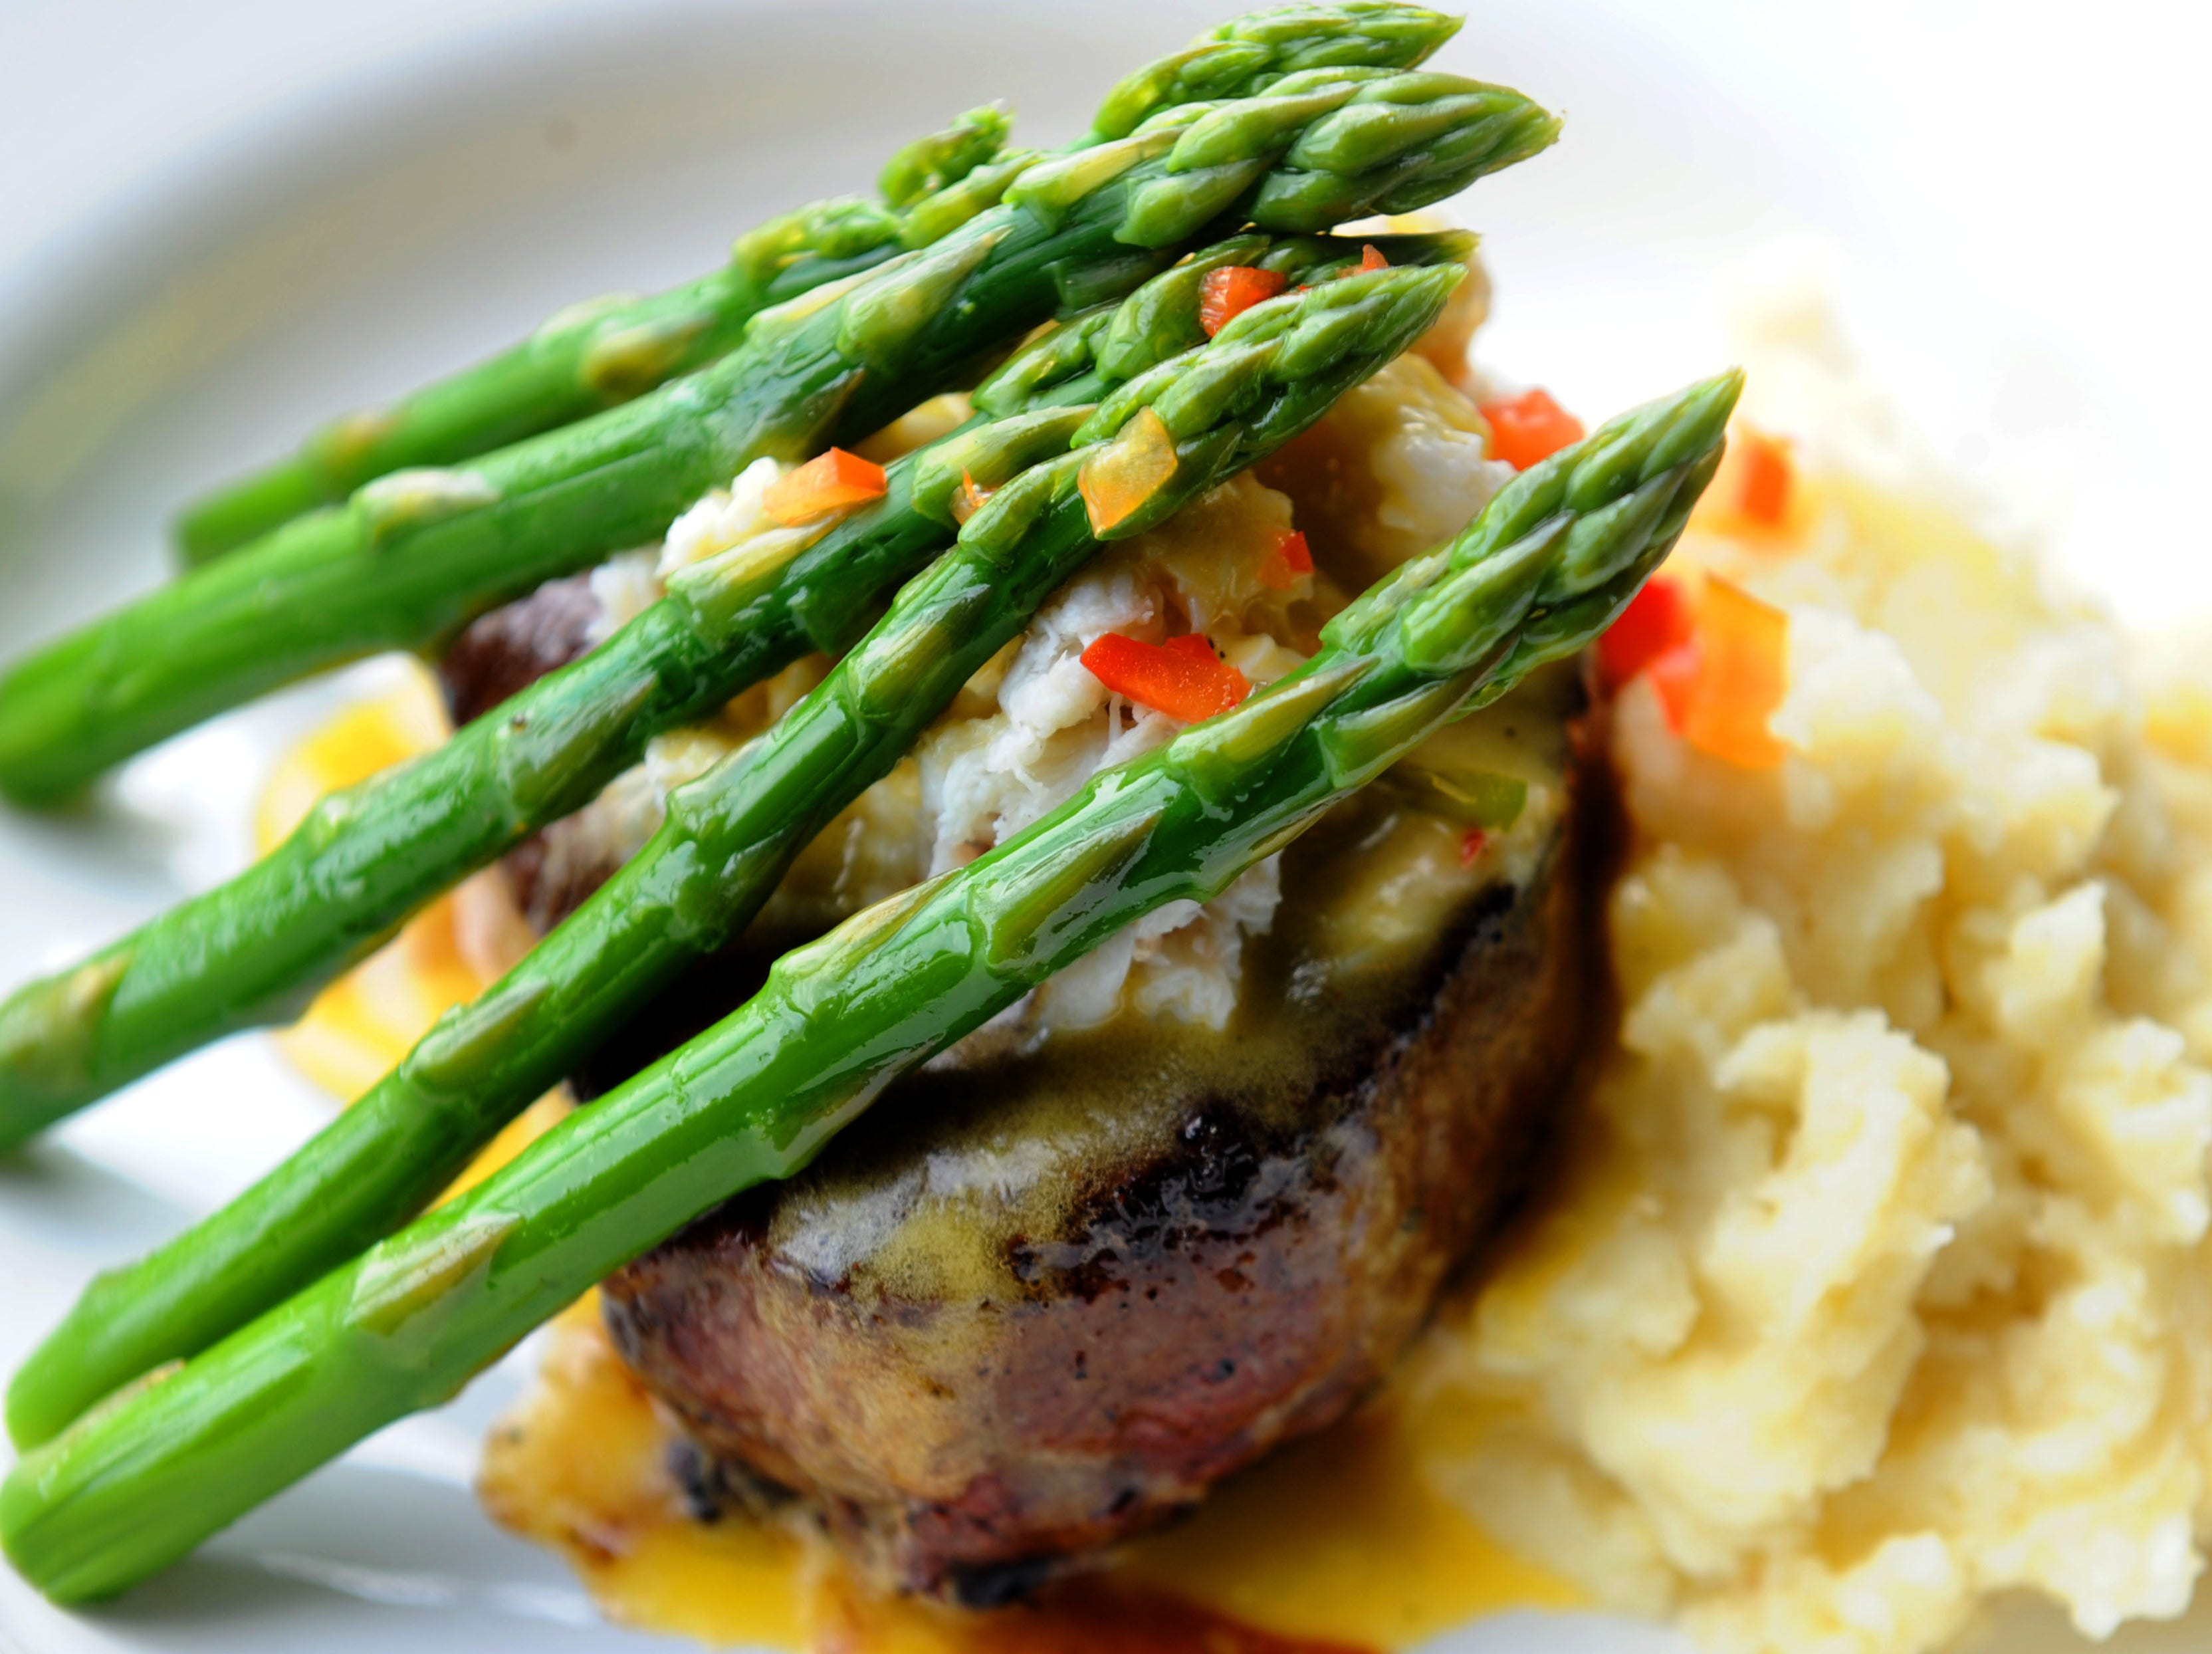 The Filet with Crab Meat and Asparagus is prepared at Salt Waterside Bistro in Oxnard.